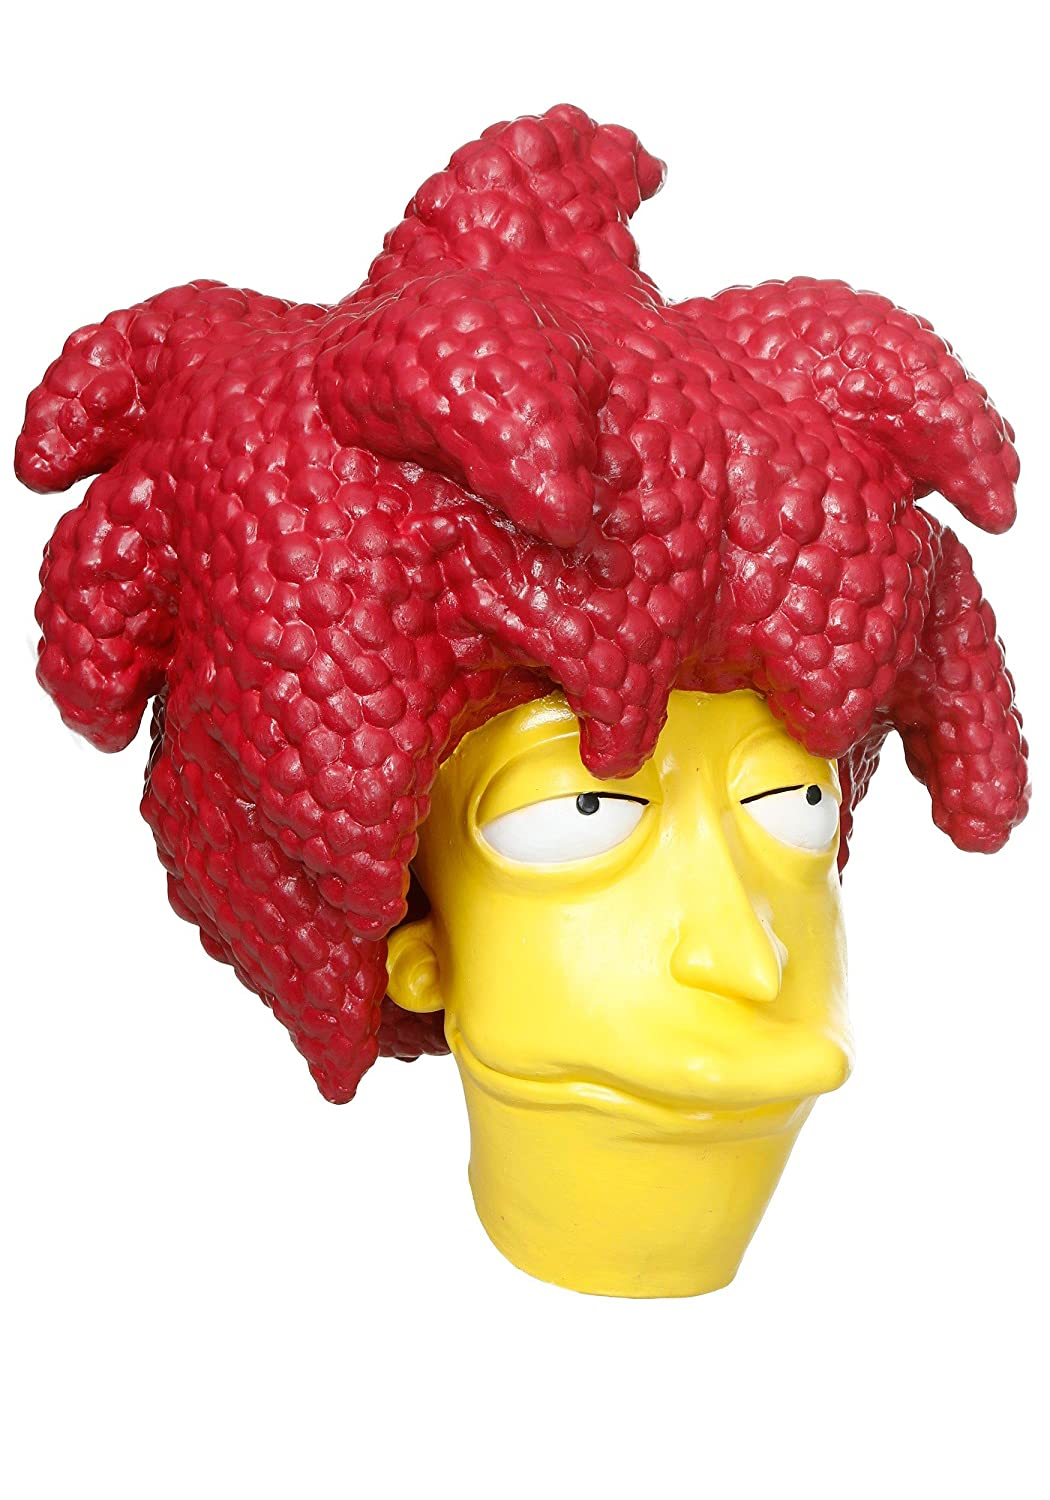 The Simpsons Sideshow Bob Mask Standardhttps://amzn.to/2PxRBlk